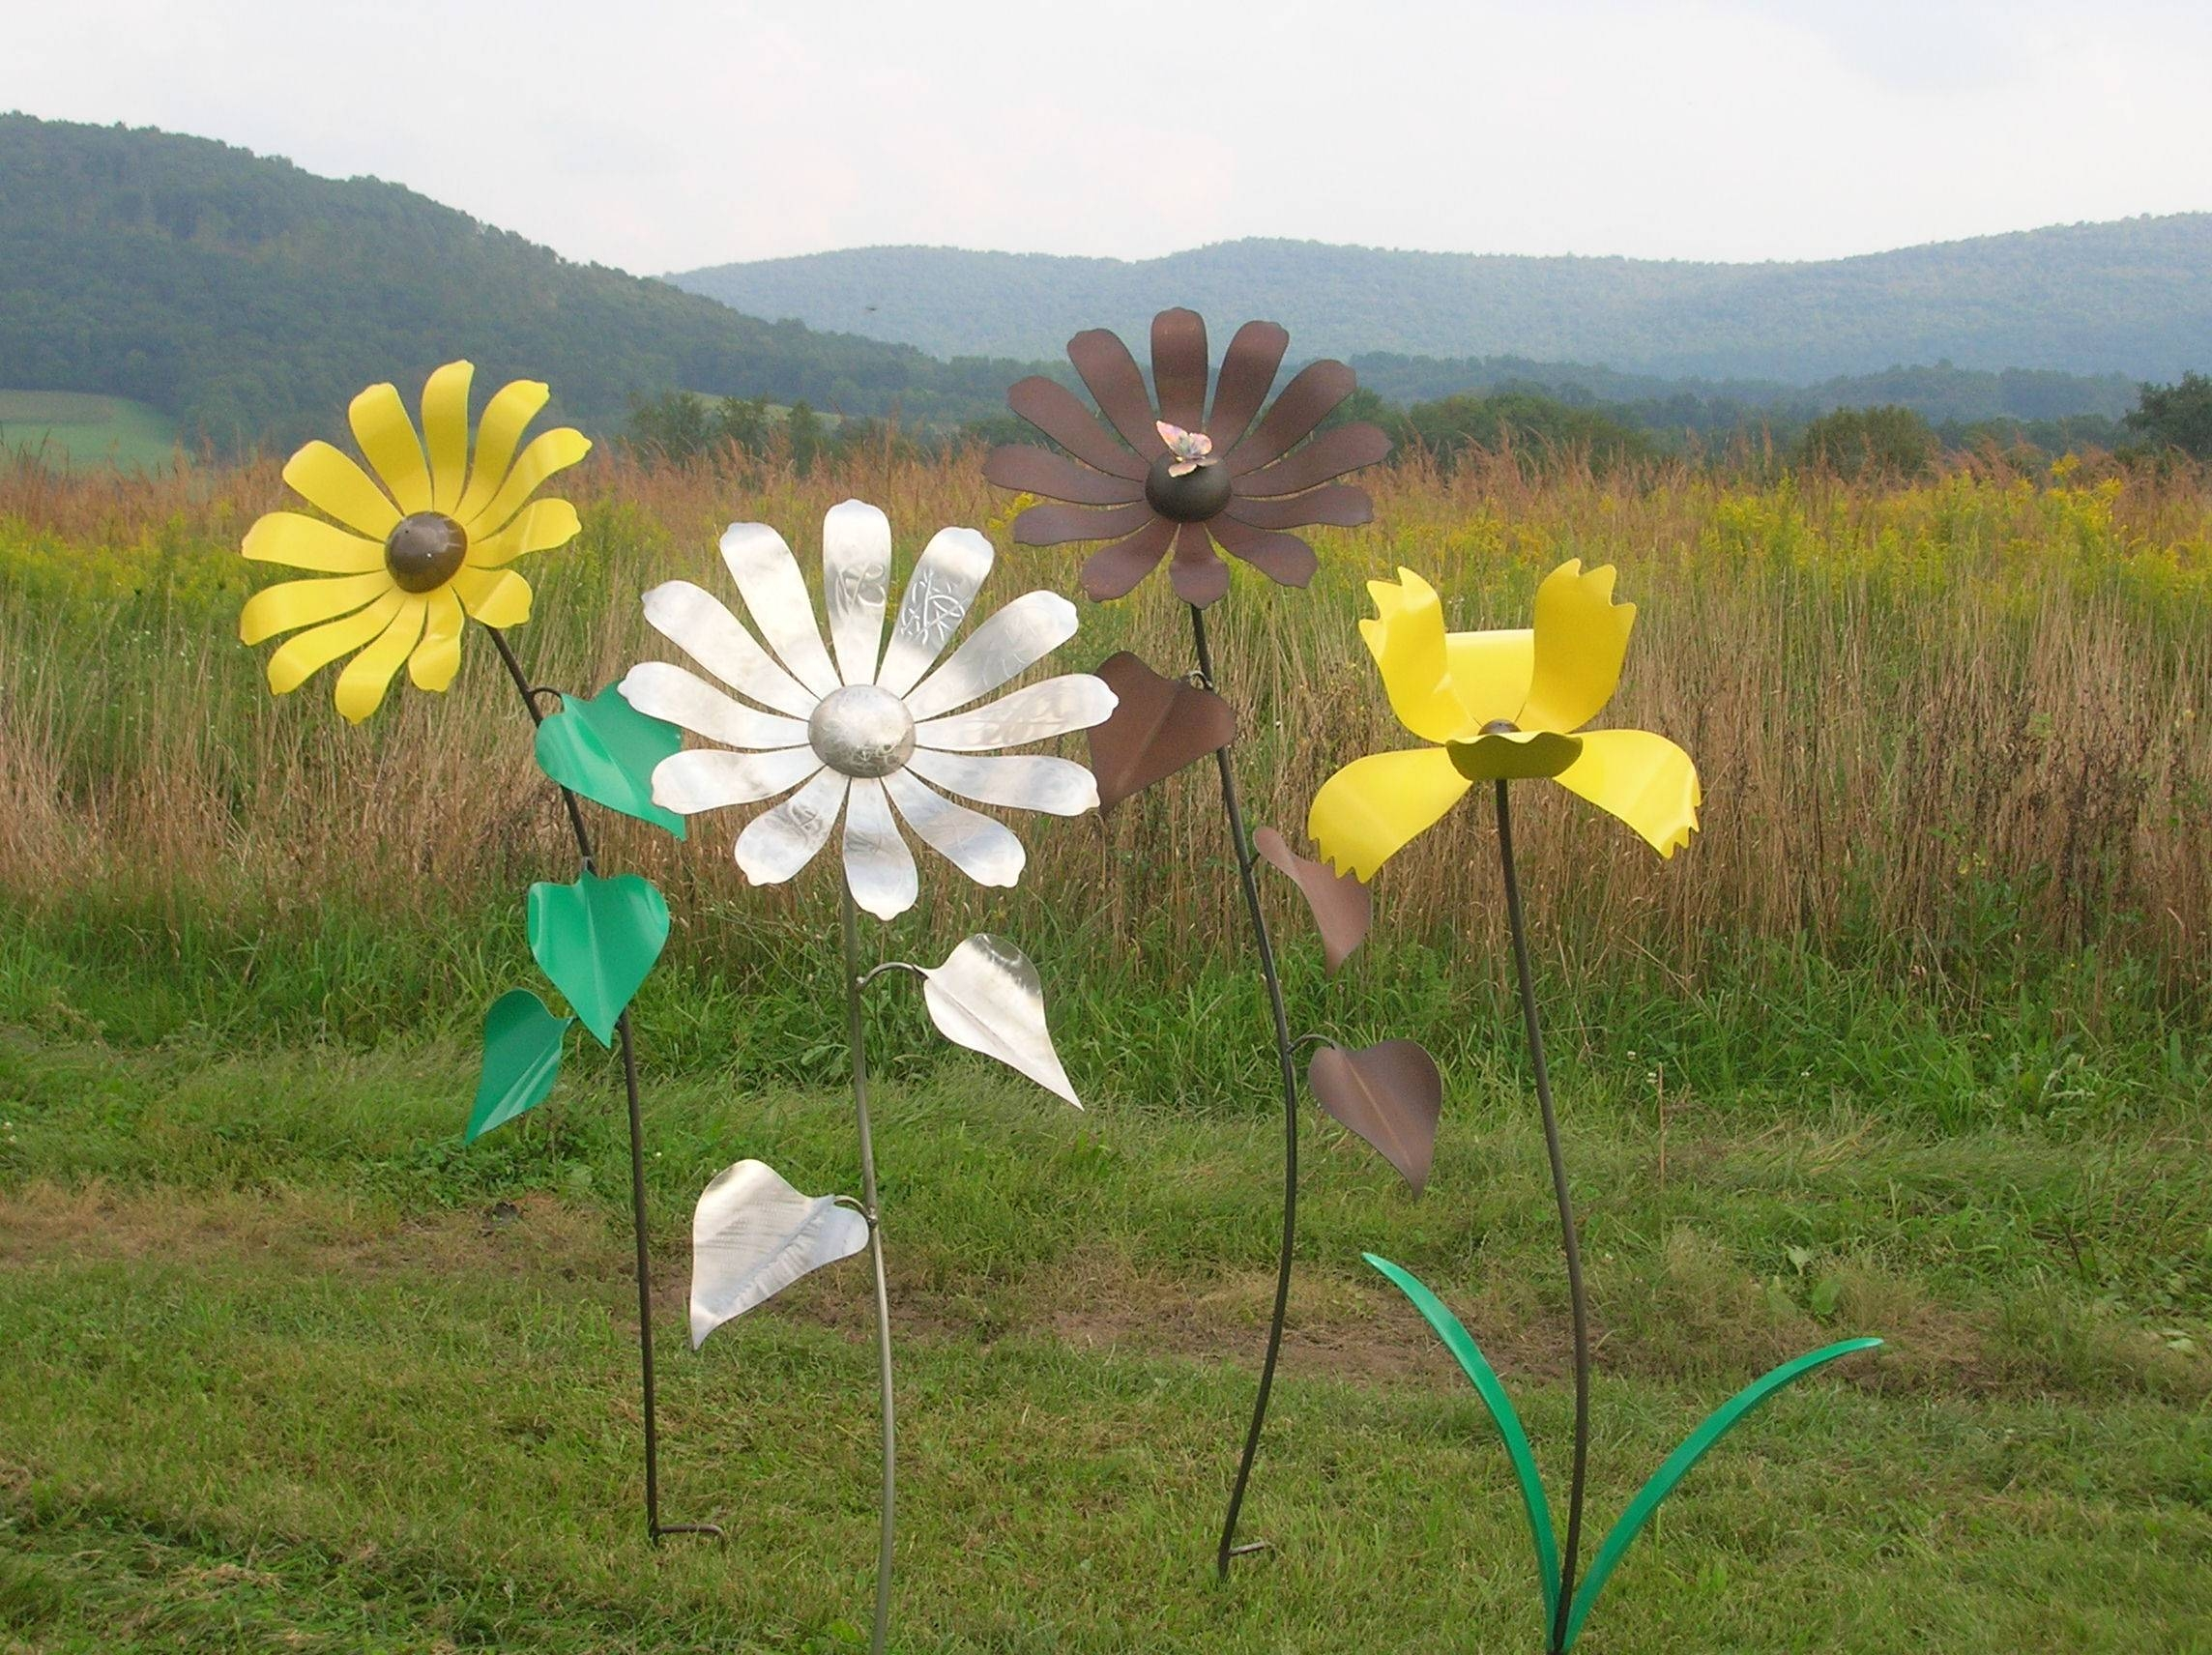 Giant Sunflowers | Shull's Metal Fab Within Recent Metal Sunflower Yard Art (Gallery 3 of 26)